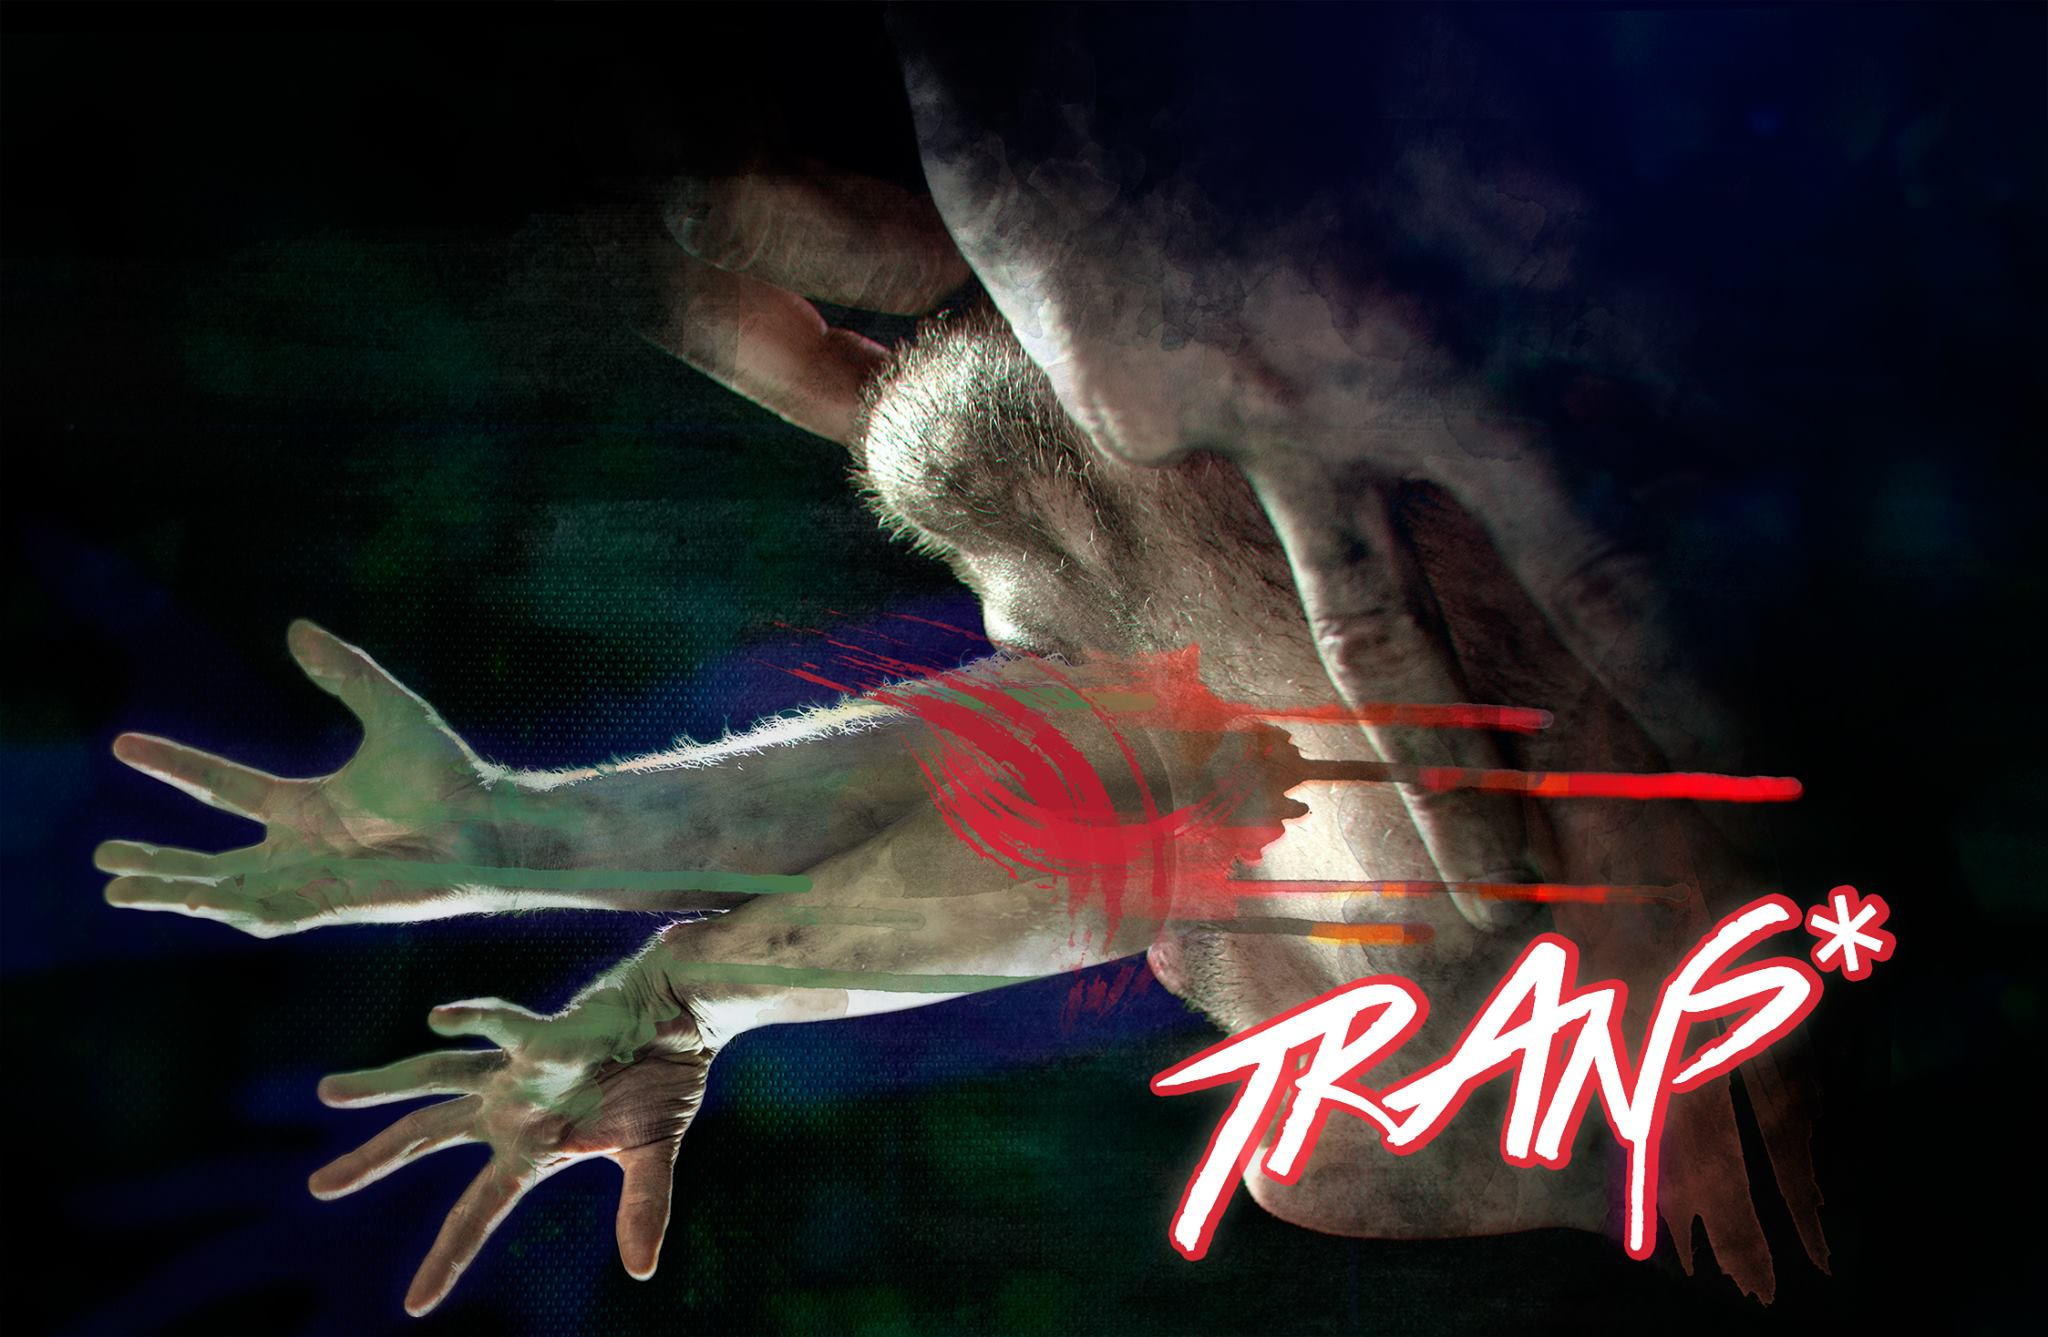 Severed Cinema review of Trans* from TR Productions